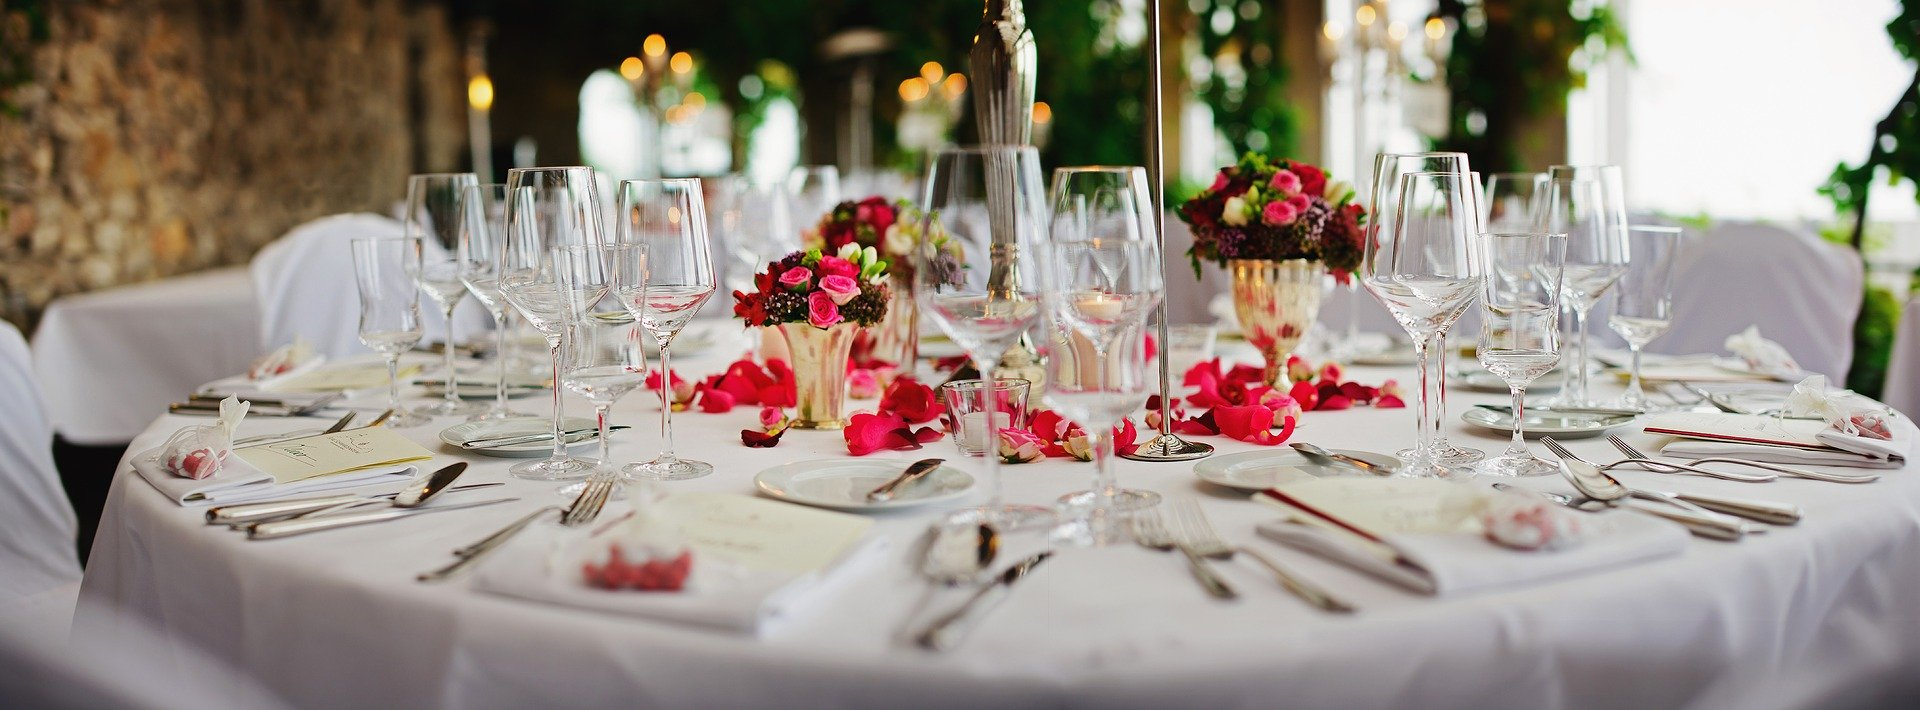 Stress Free and Serene Events Company Objectives